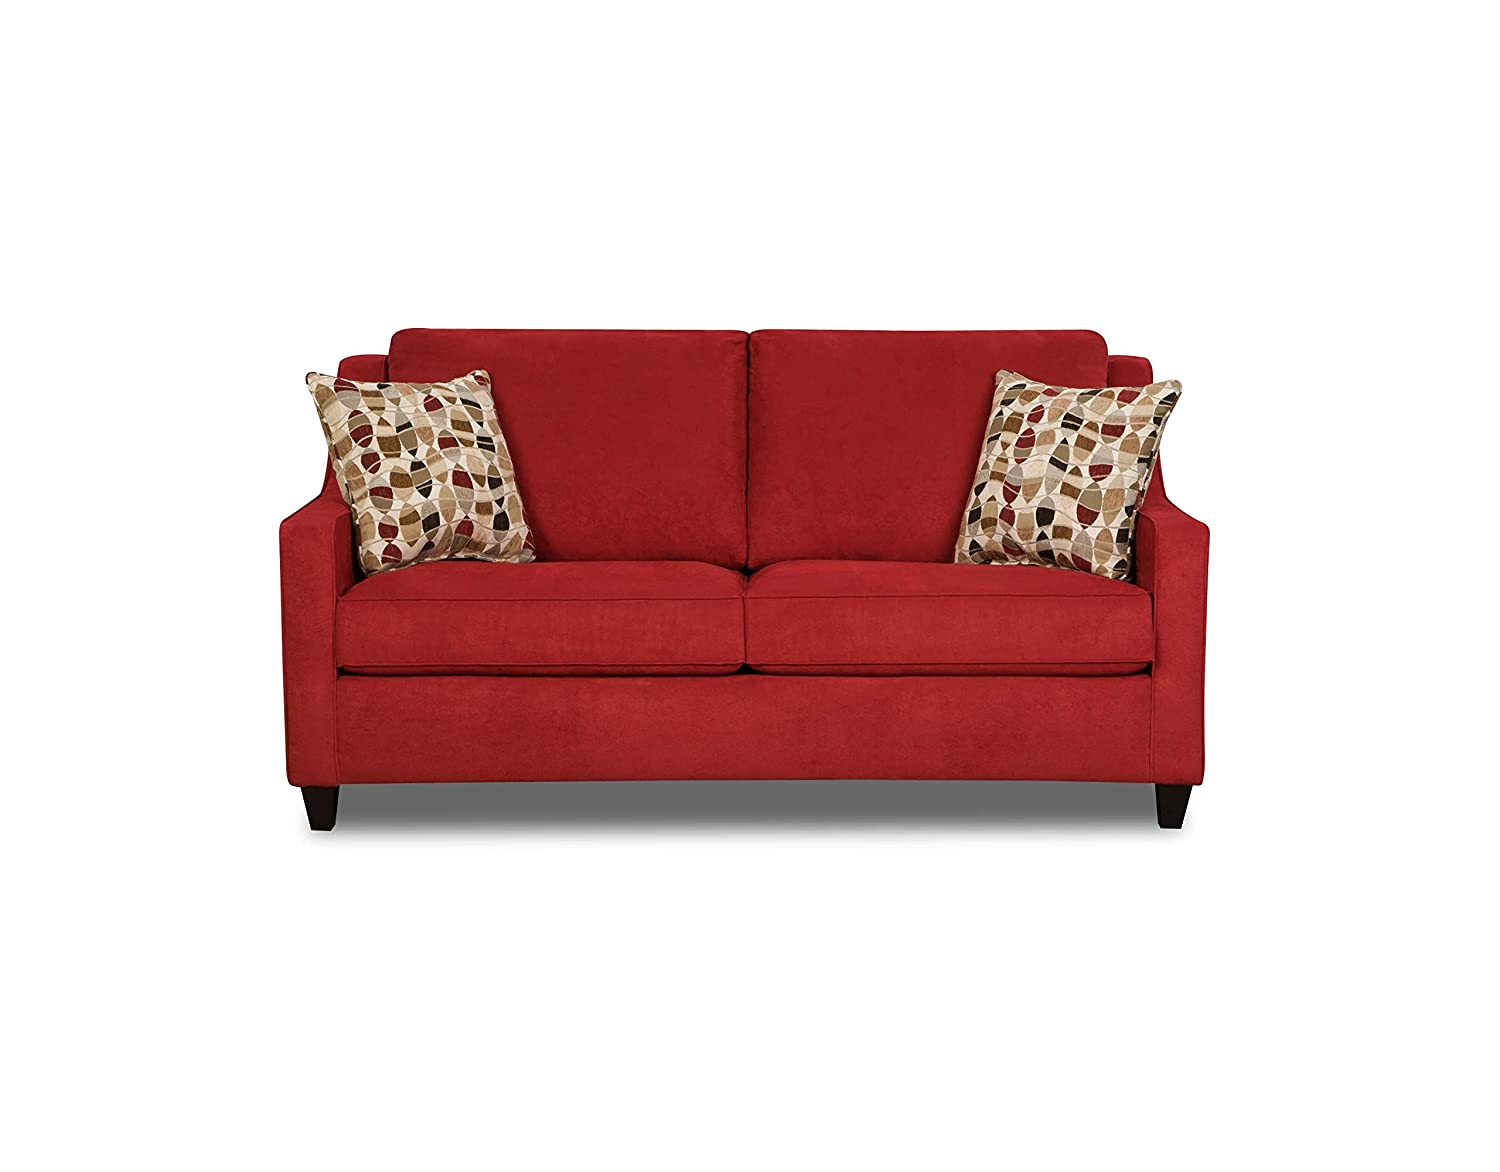 Simmons Upholstery Twillo Hide-a-Bed - Full - Blaze Red